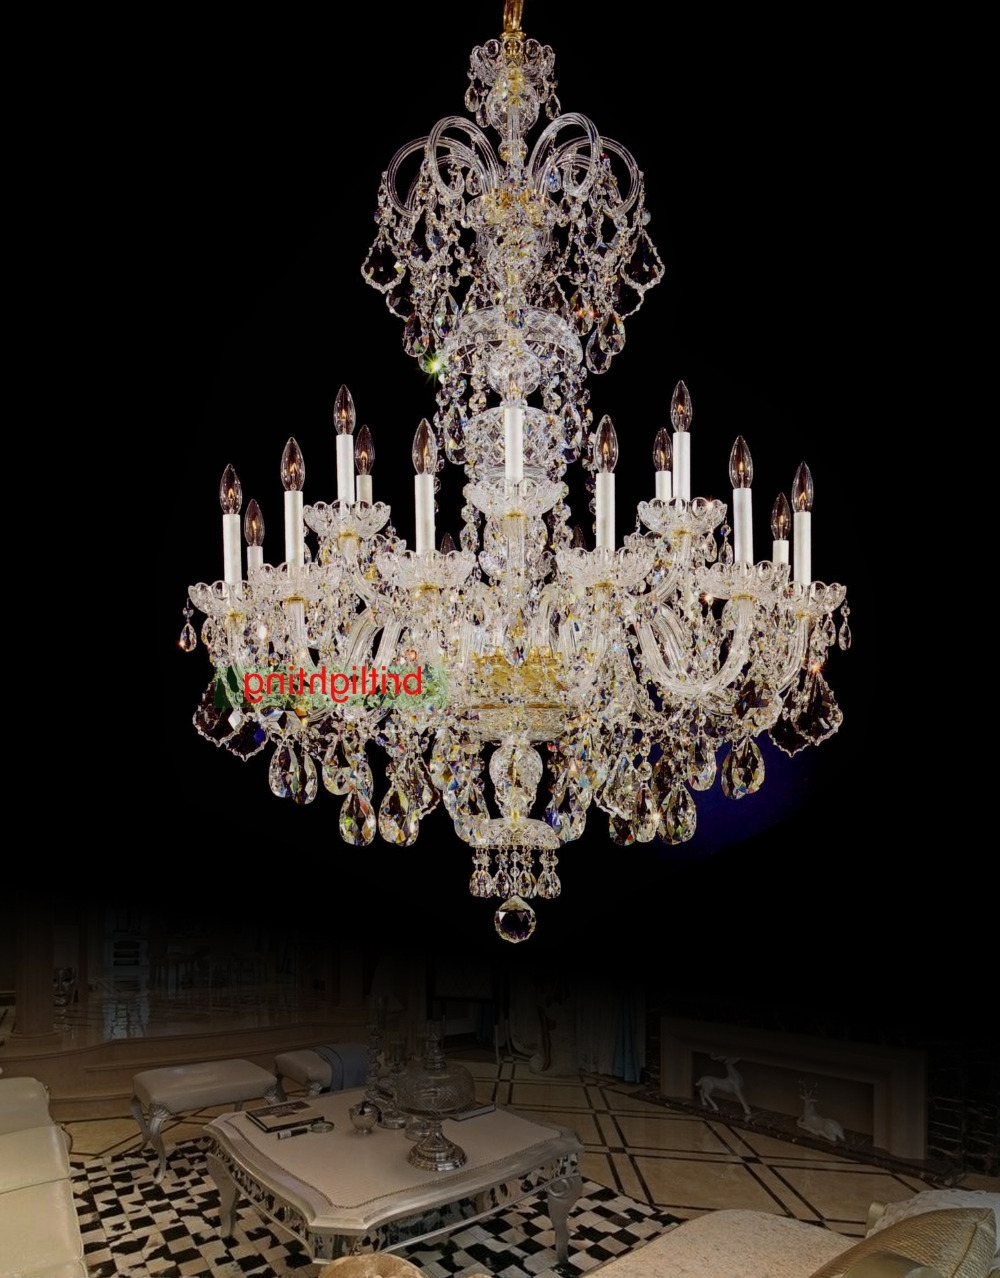 Big Crystal Chandelier With Regard To Best And Newest Large Crystal Chandelier Entrance Hall Lighting Luxury Crystal Light (View 5 of 20)